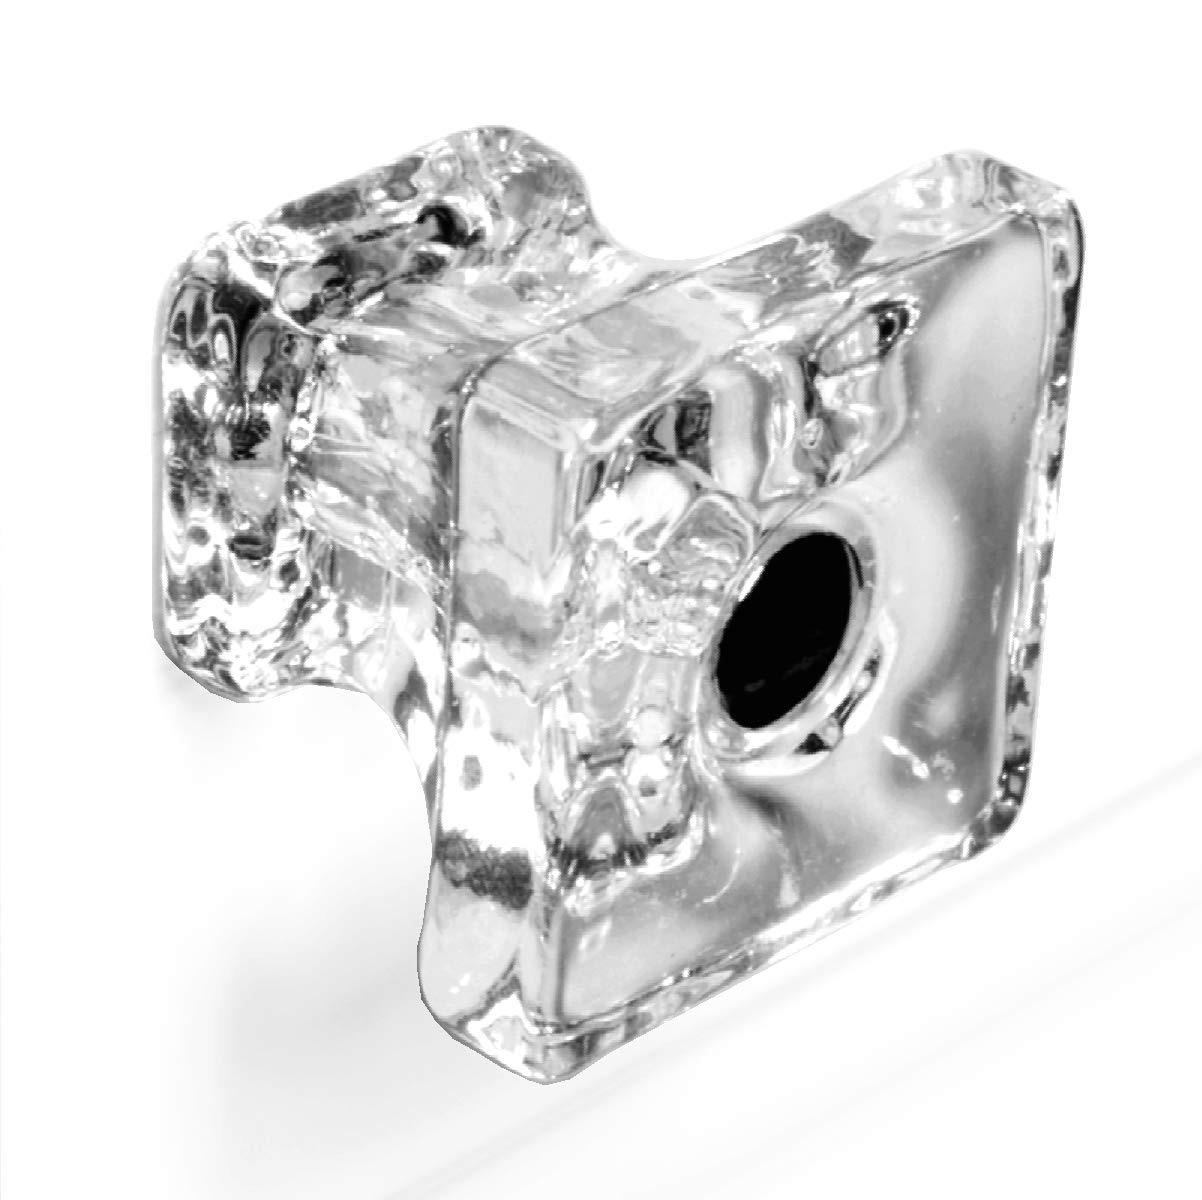 Classic Cabinet Knobs Unique Dresser Drawer Pulls or Glass Handles 10 Pack T82VF Clear Square Knob with Polished Nickel Hardware. Romantic Decor & More